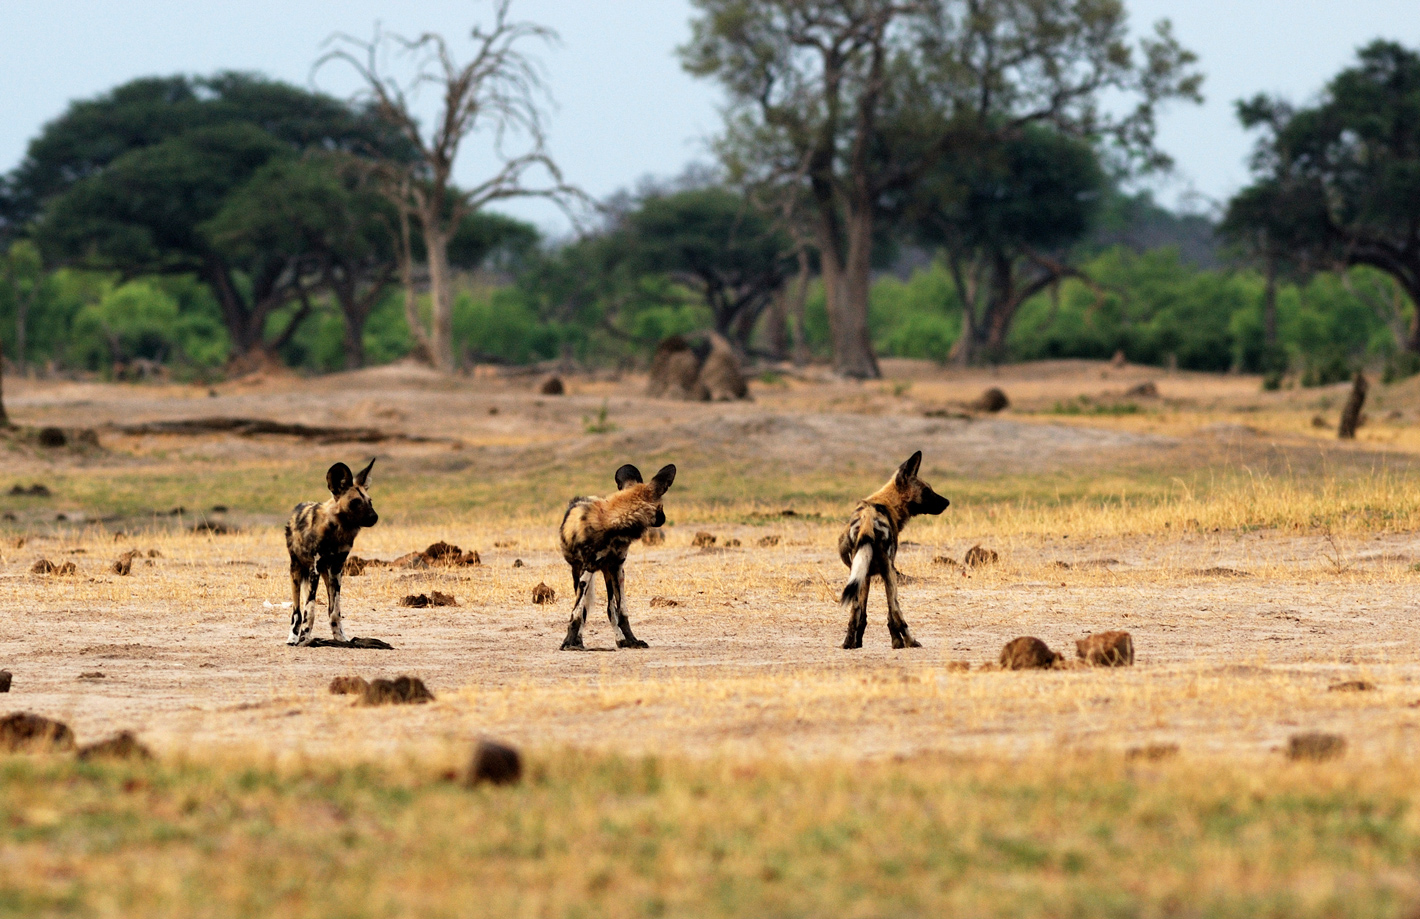 Three wild dogs on the prowl